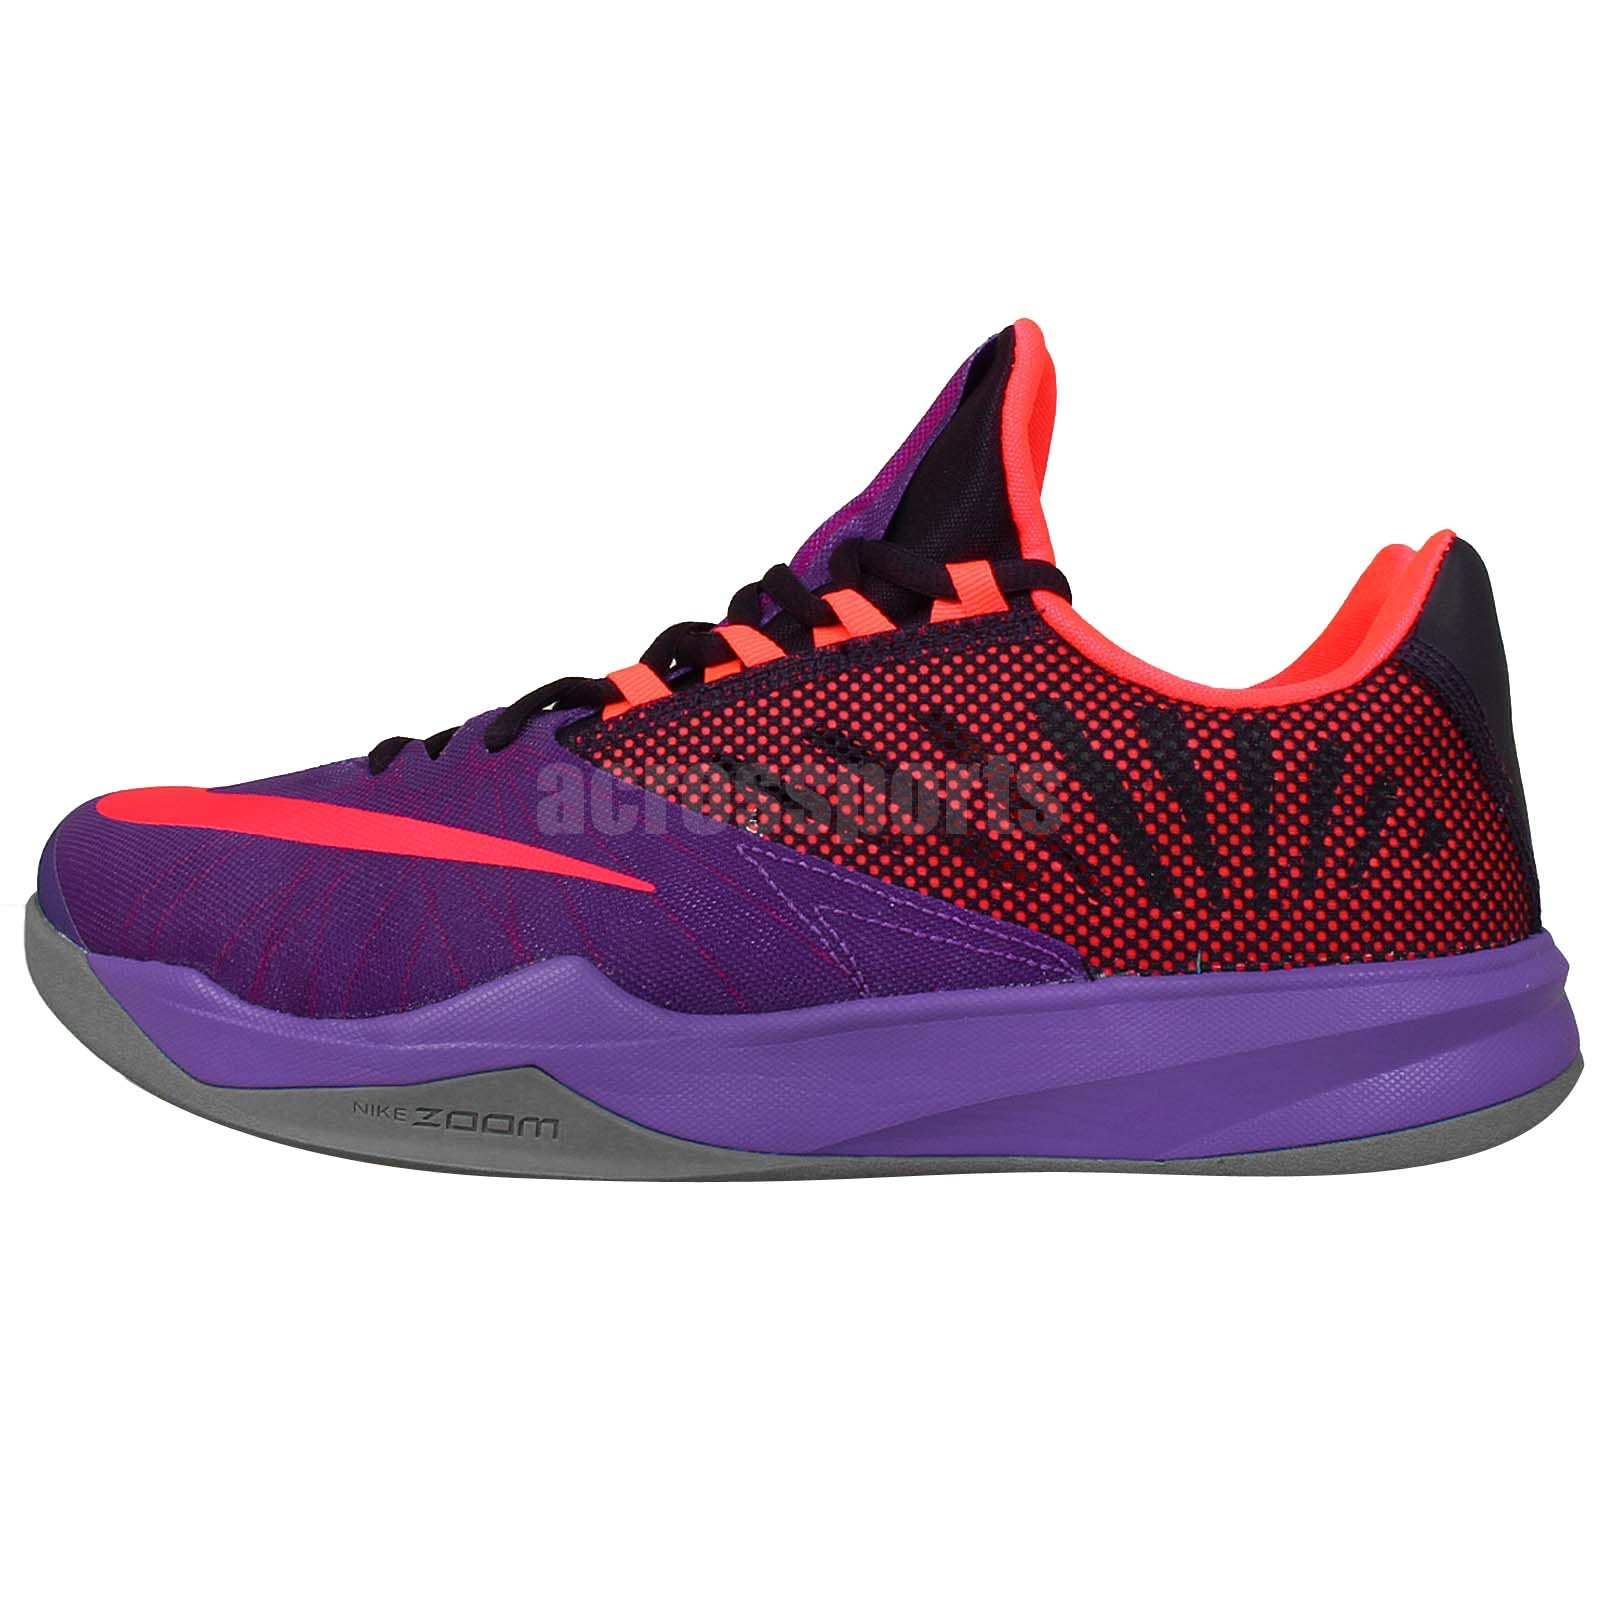 James Harden Kid Shoes: Nike Zoom Run The One EP James Harden Purple Pink 2014